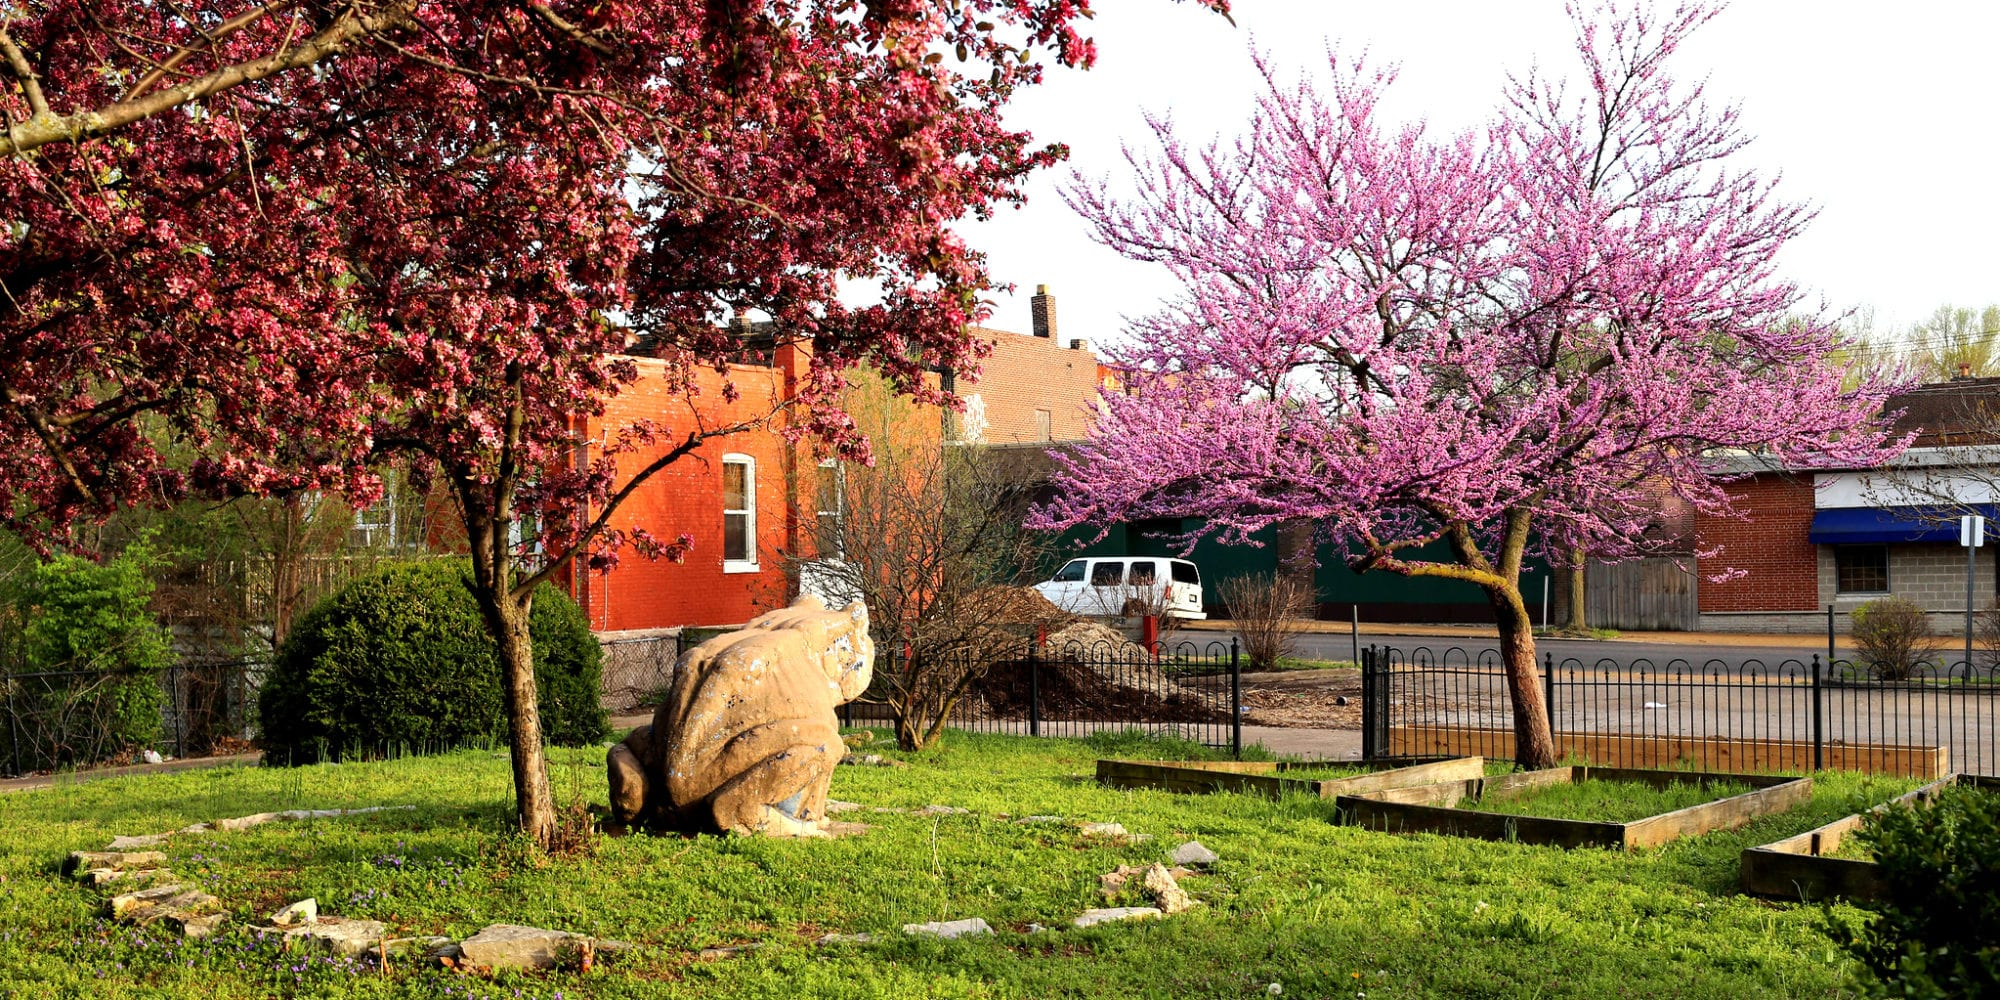 The Frog Garden at Chippewa Street and Oregon Avenue in Gravois Park, St. Louis, MO. Photo by Paul Sableman.